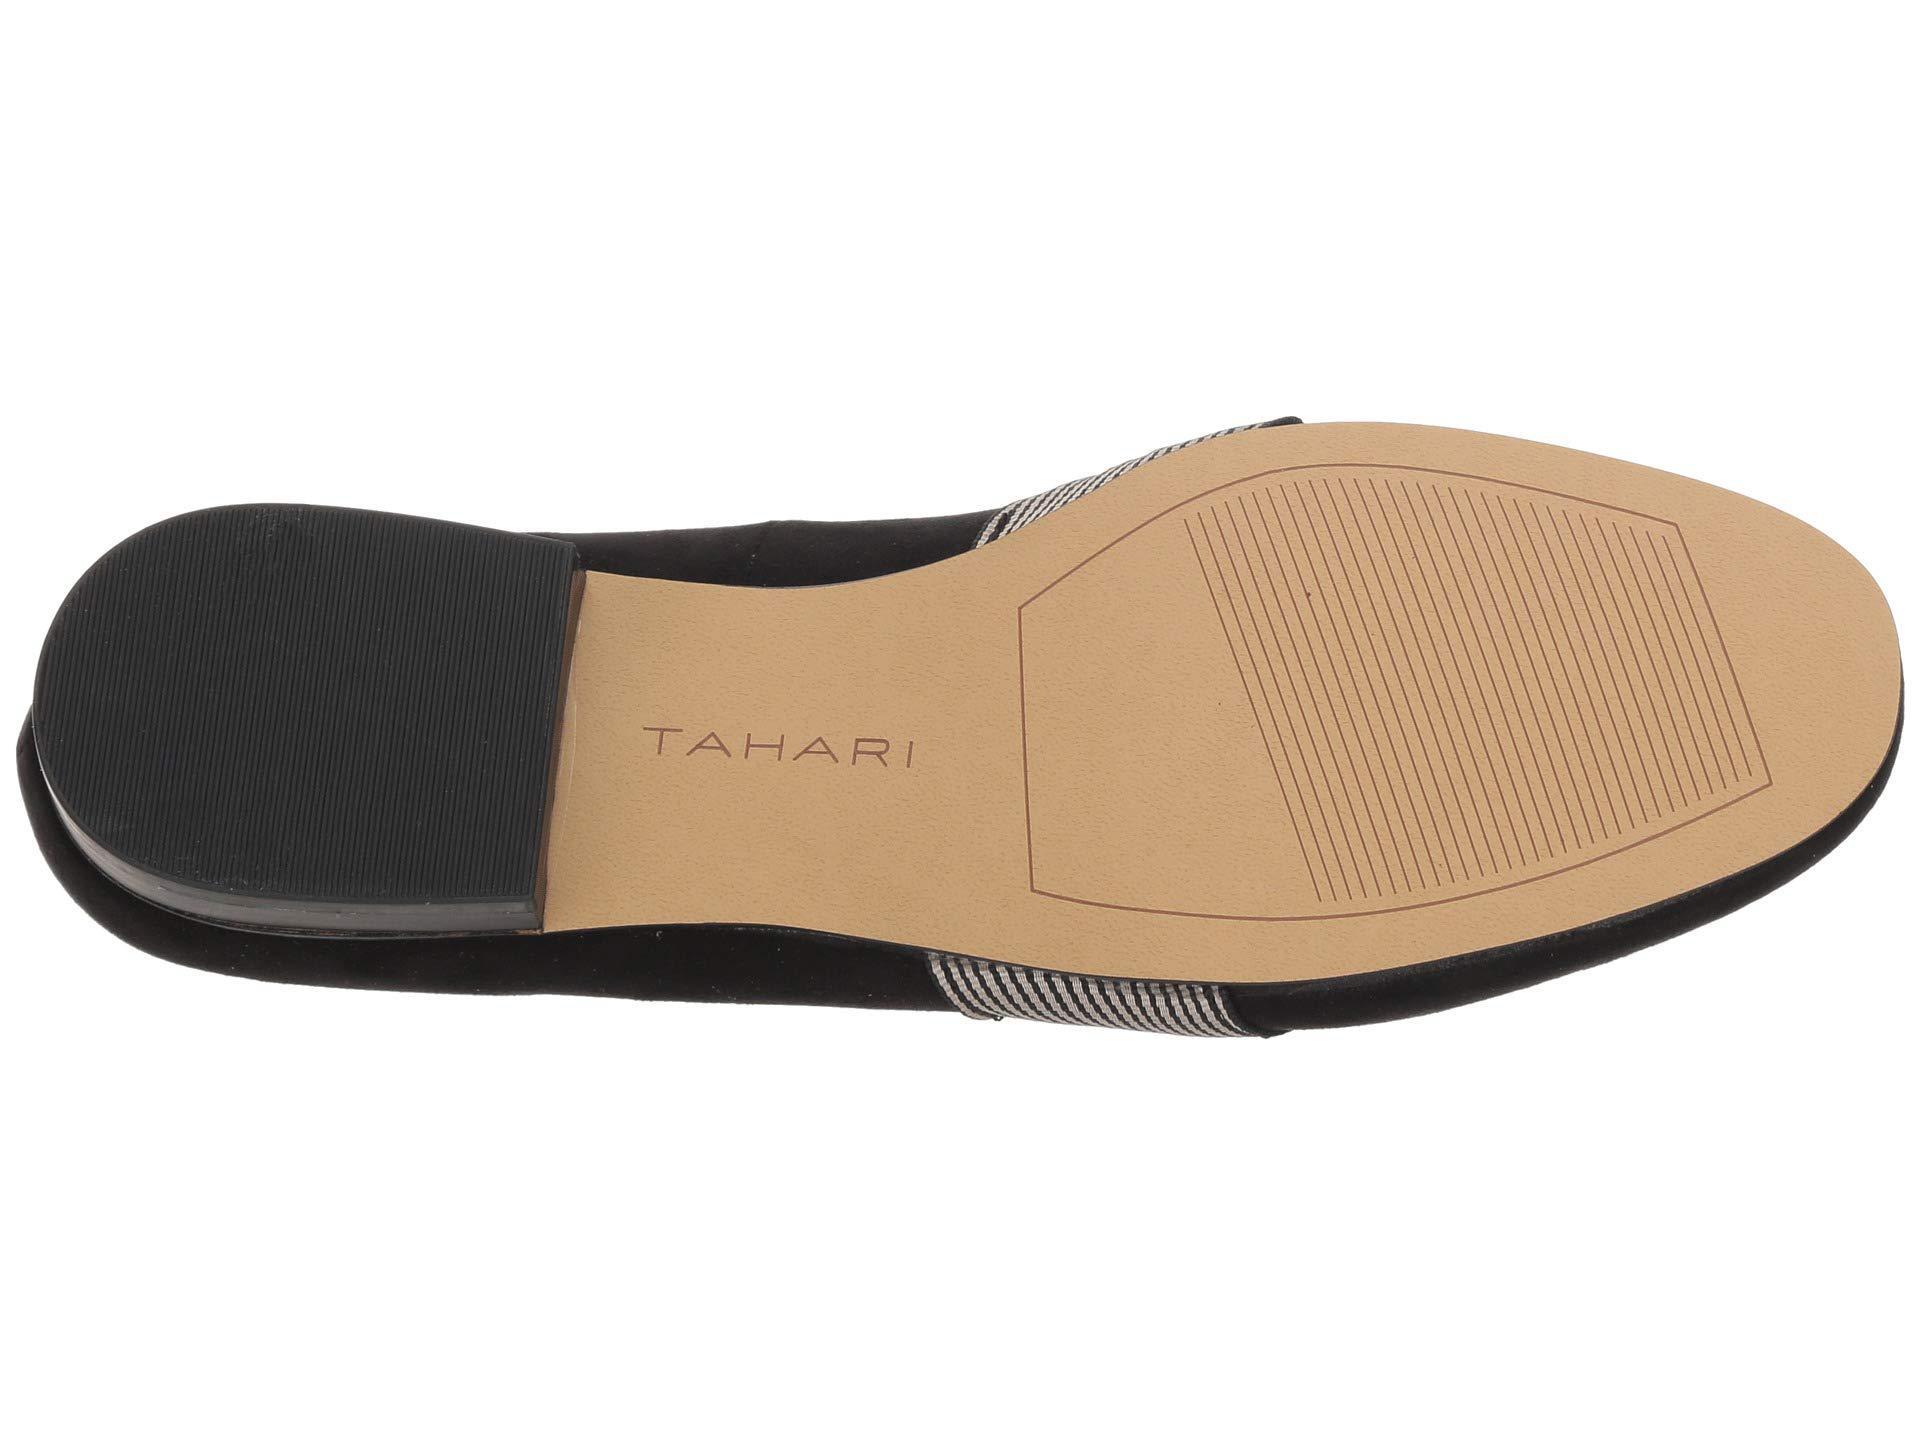 6c83171cd10 Lyst - Tahari Session Loafer in Black - Save 9%